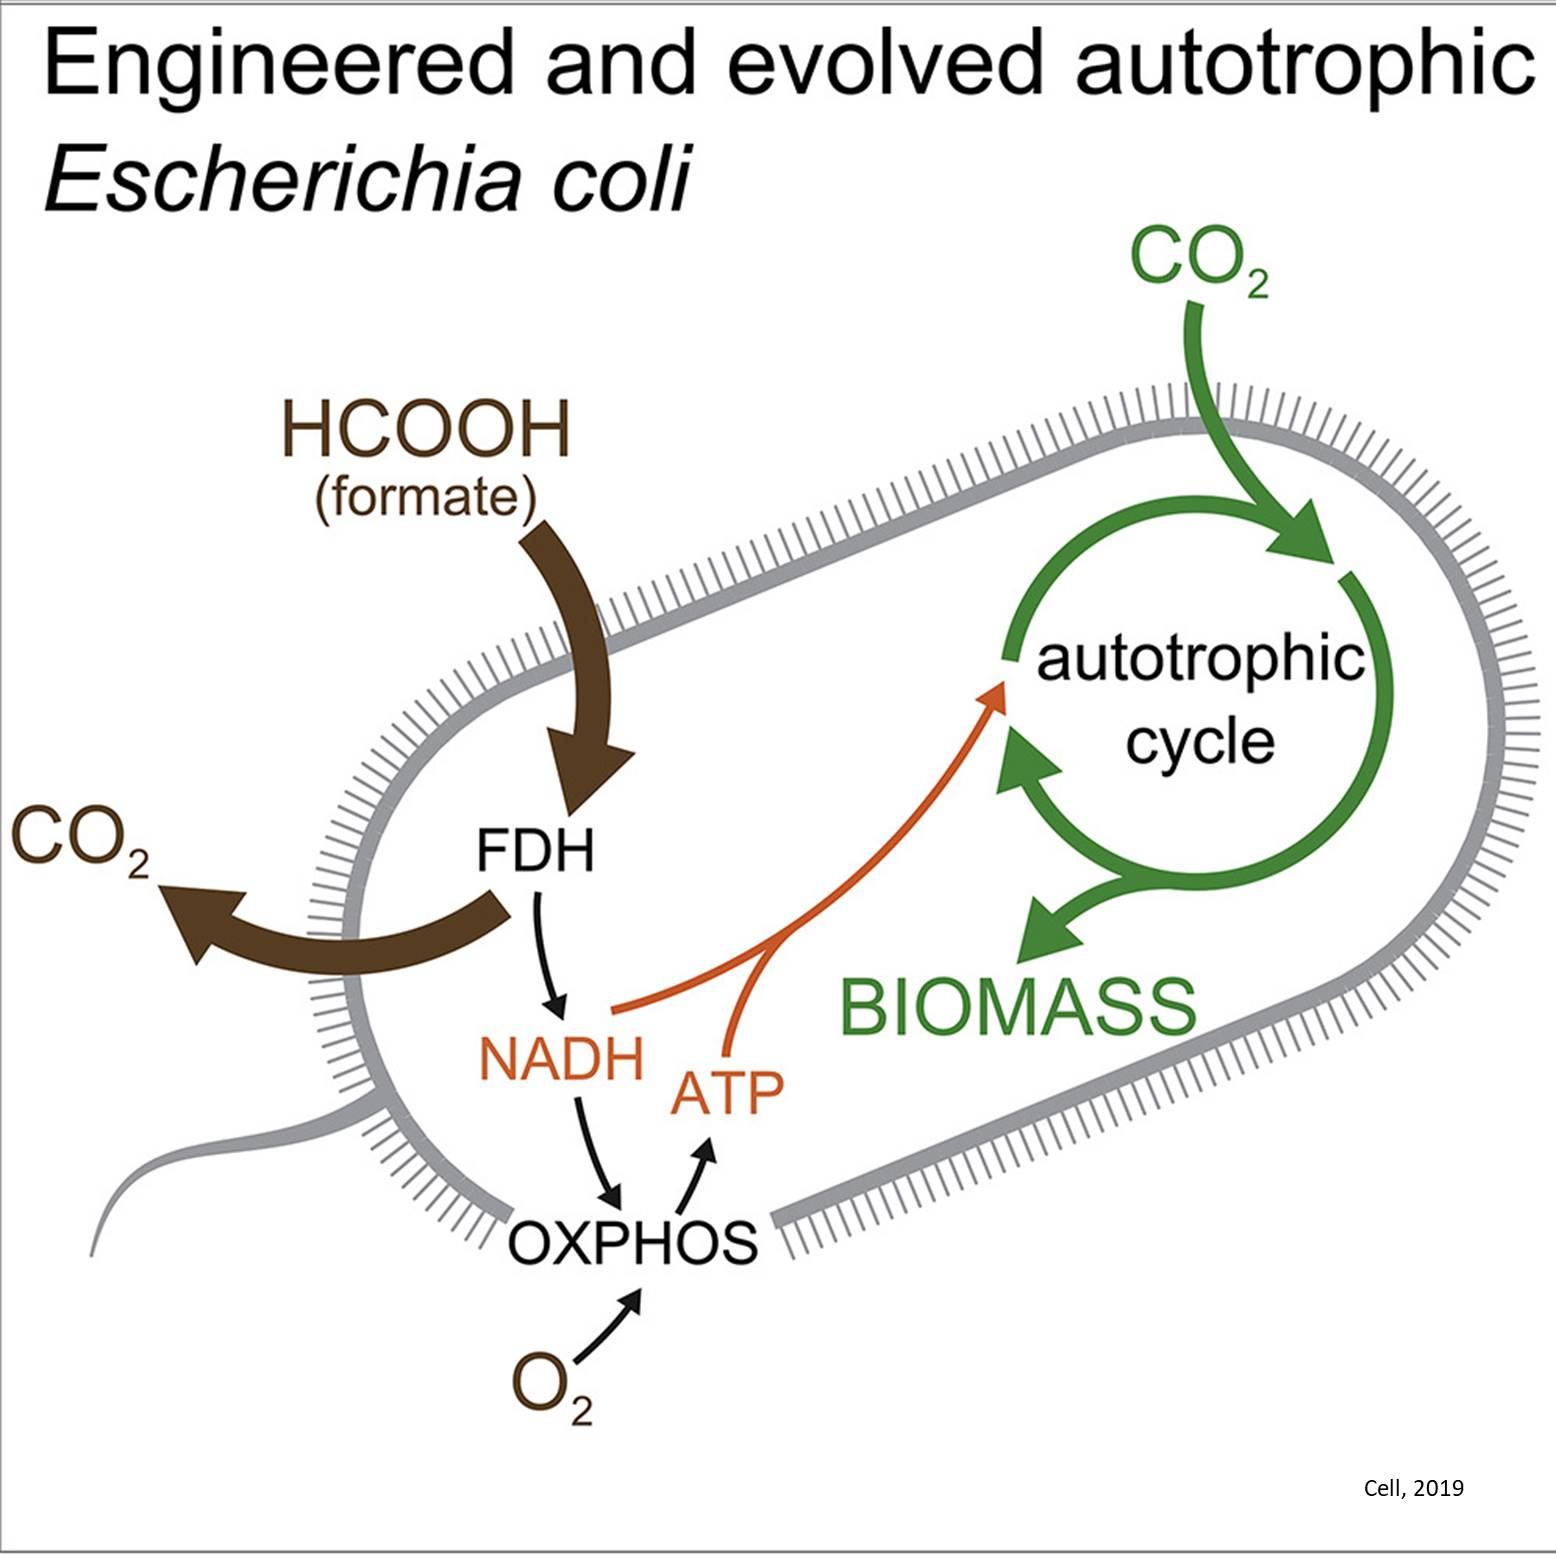 Modifying bacteria to consume CO2